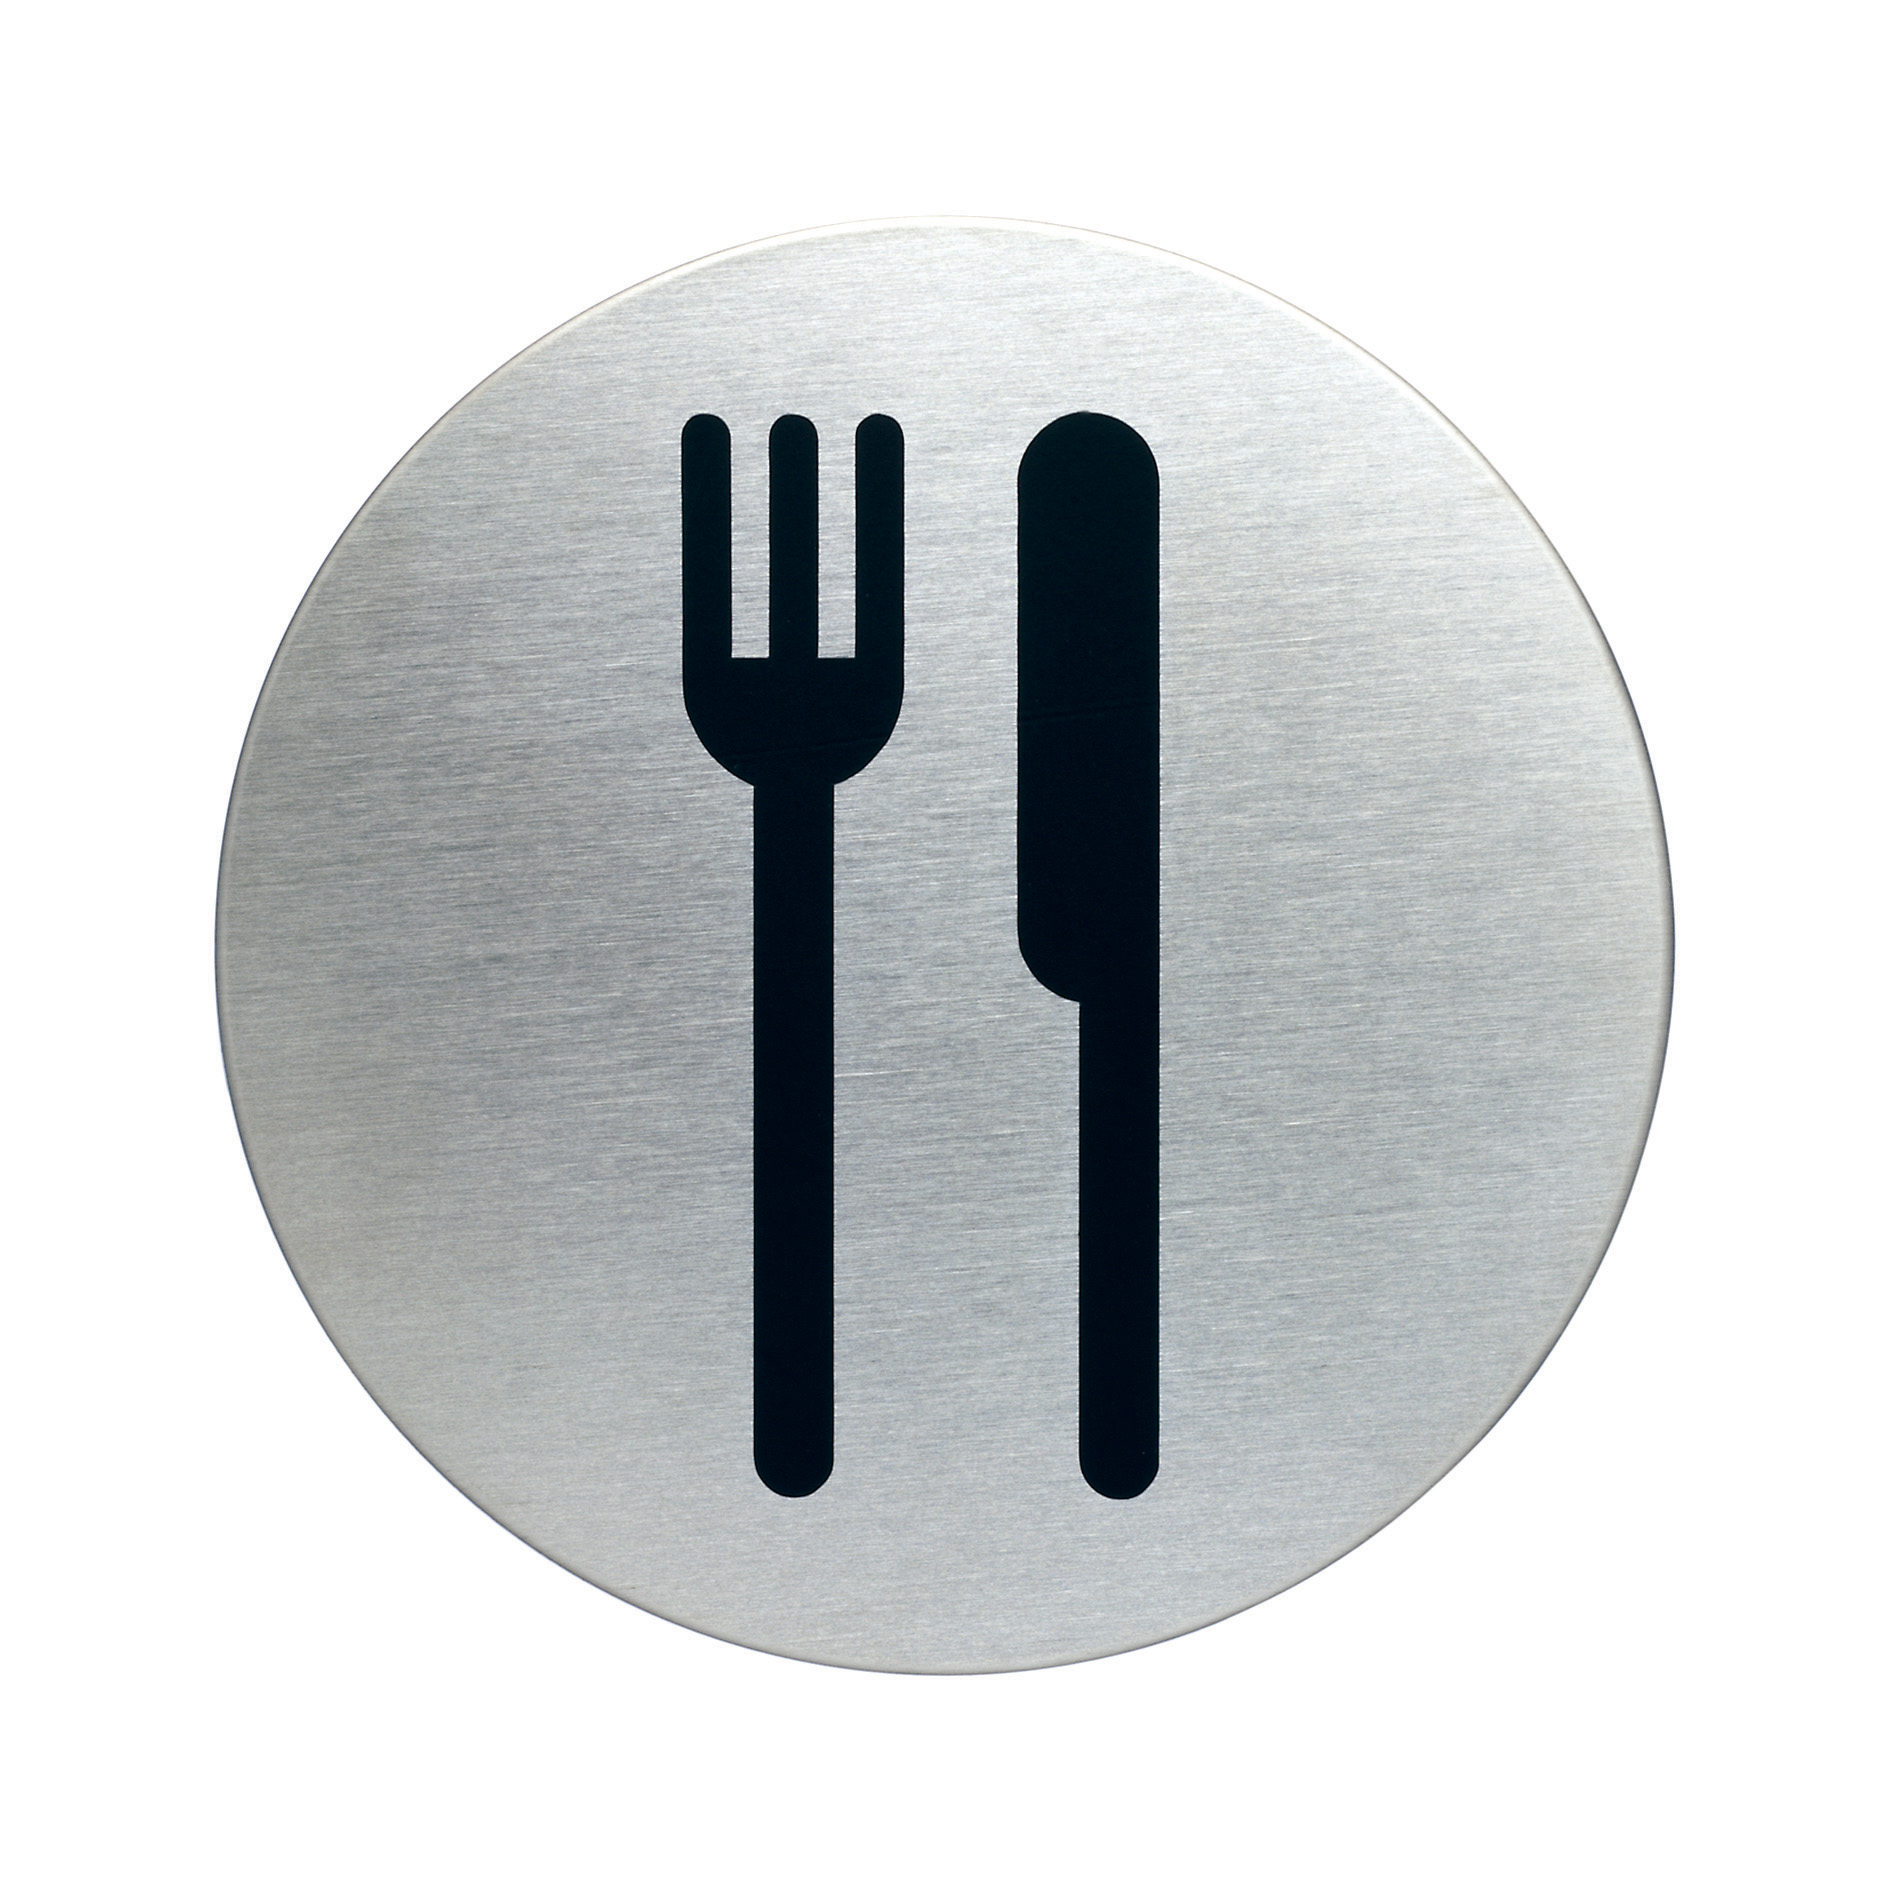 RVS Pictogram Ø 83mm restaurant - kantine